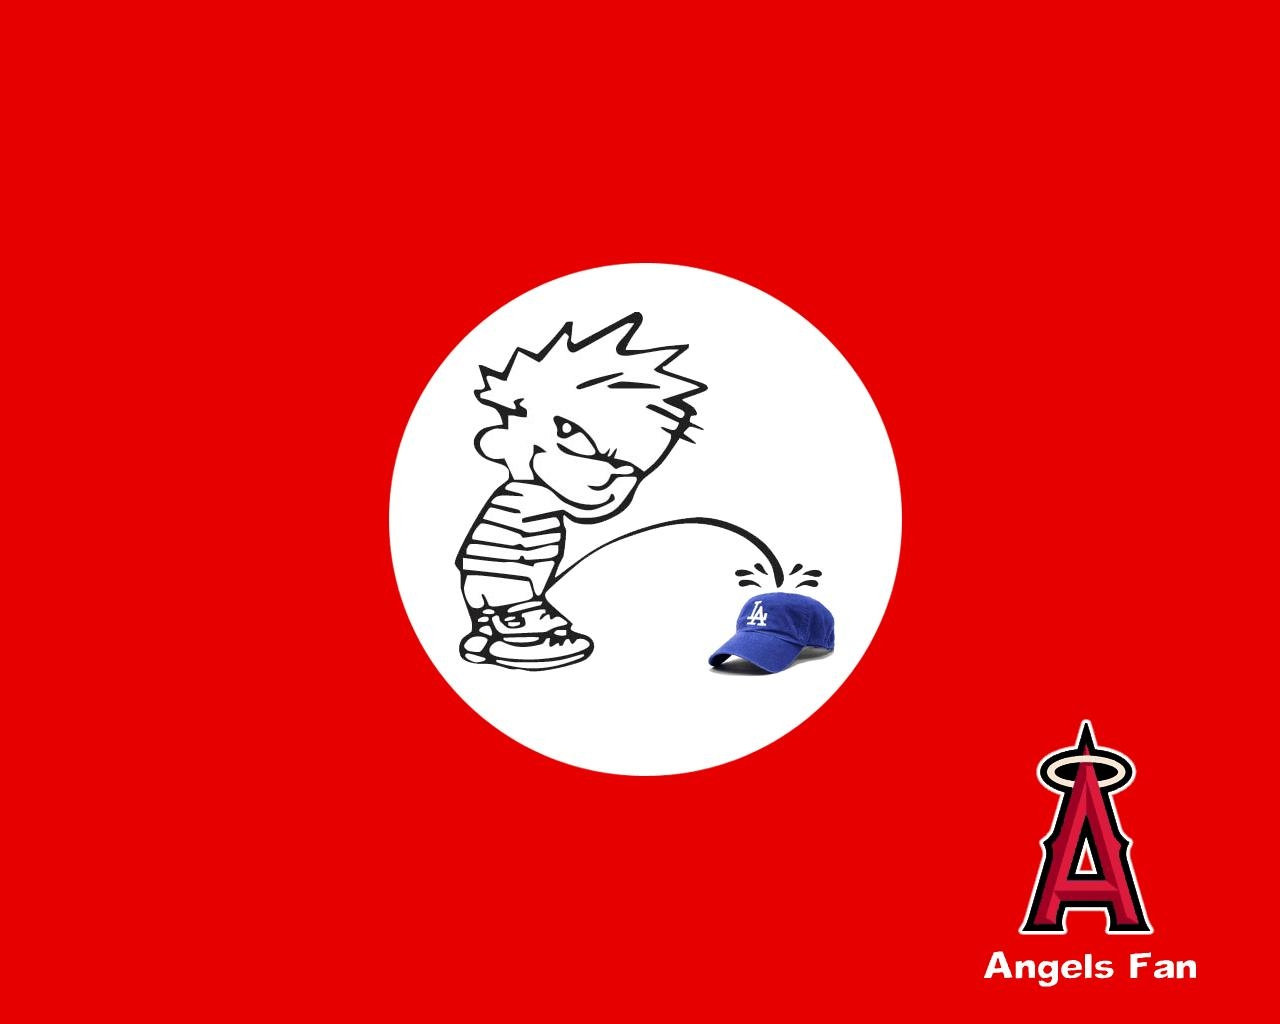 Los Angeles Angels of Anaheim wallpapers Los Angeles Angels of 1280x1024